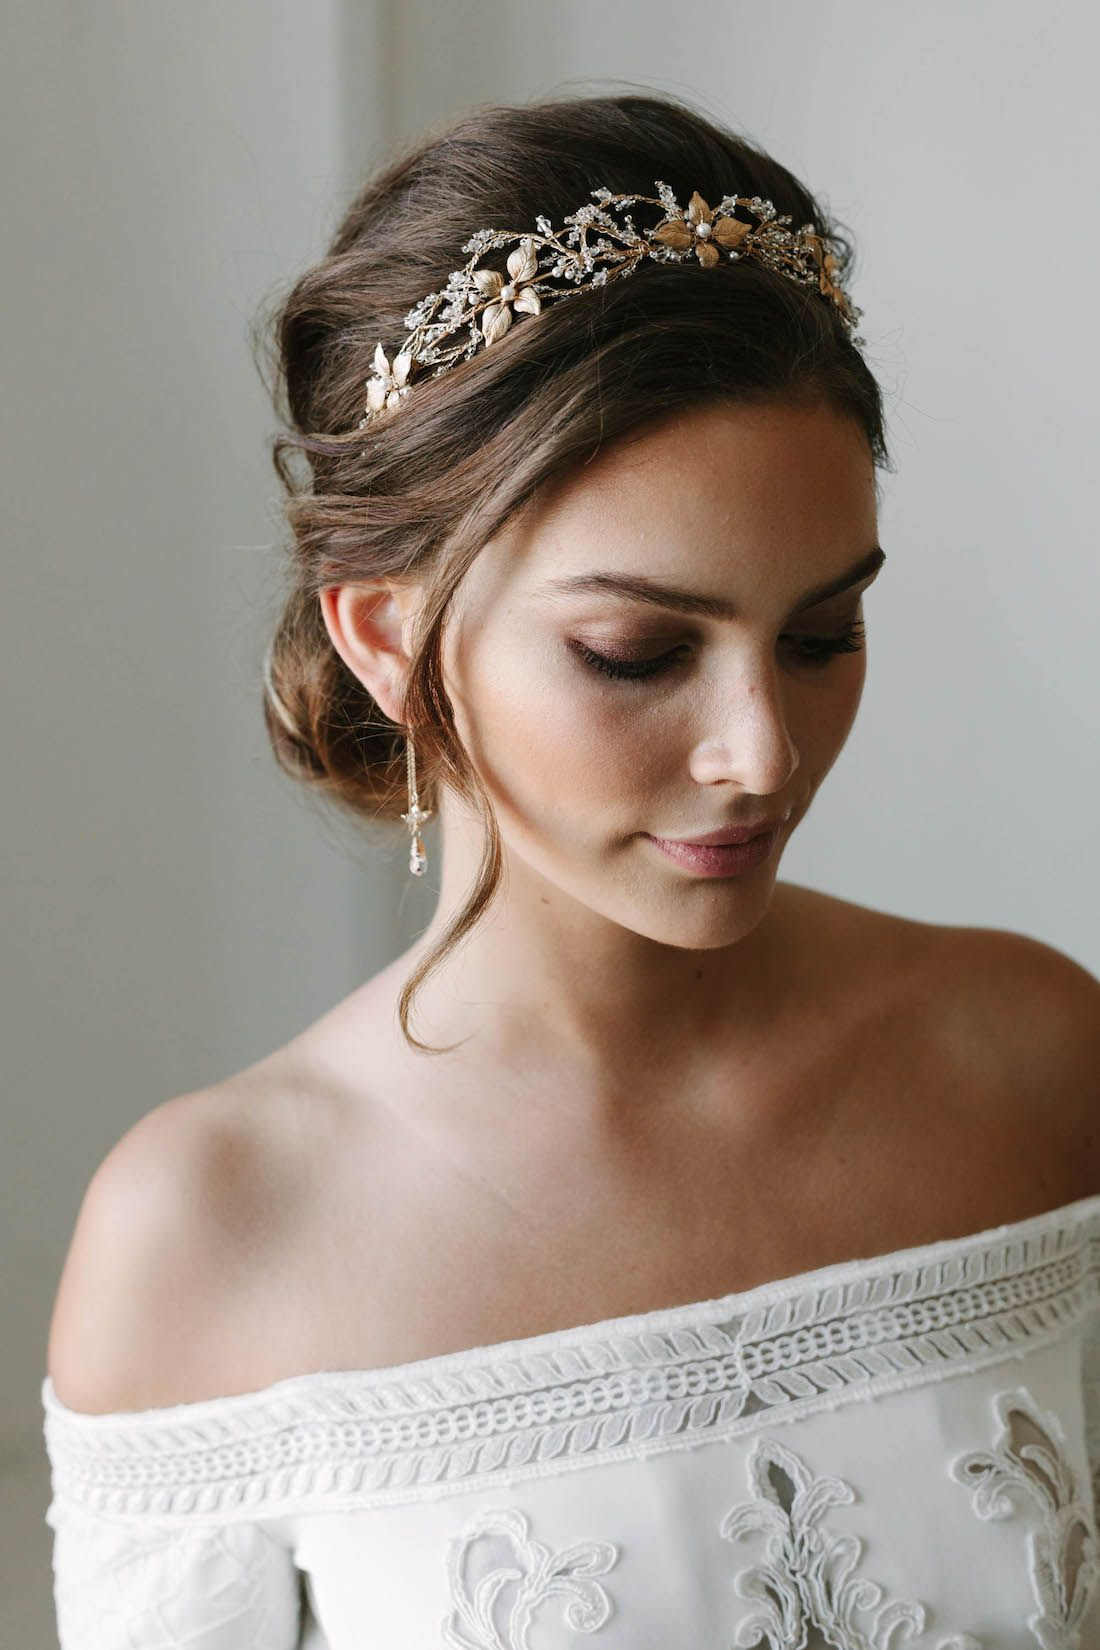 ROSEBURY crystal wedding crown | TANIA MARAS